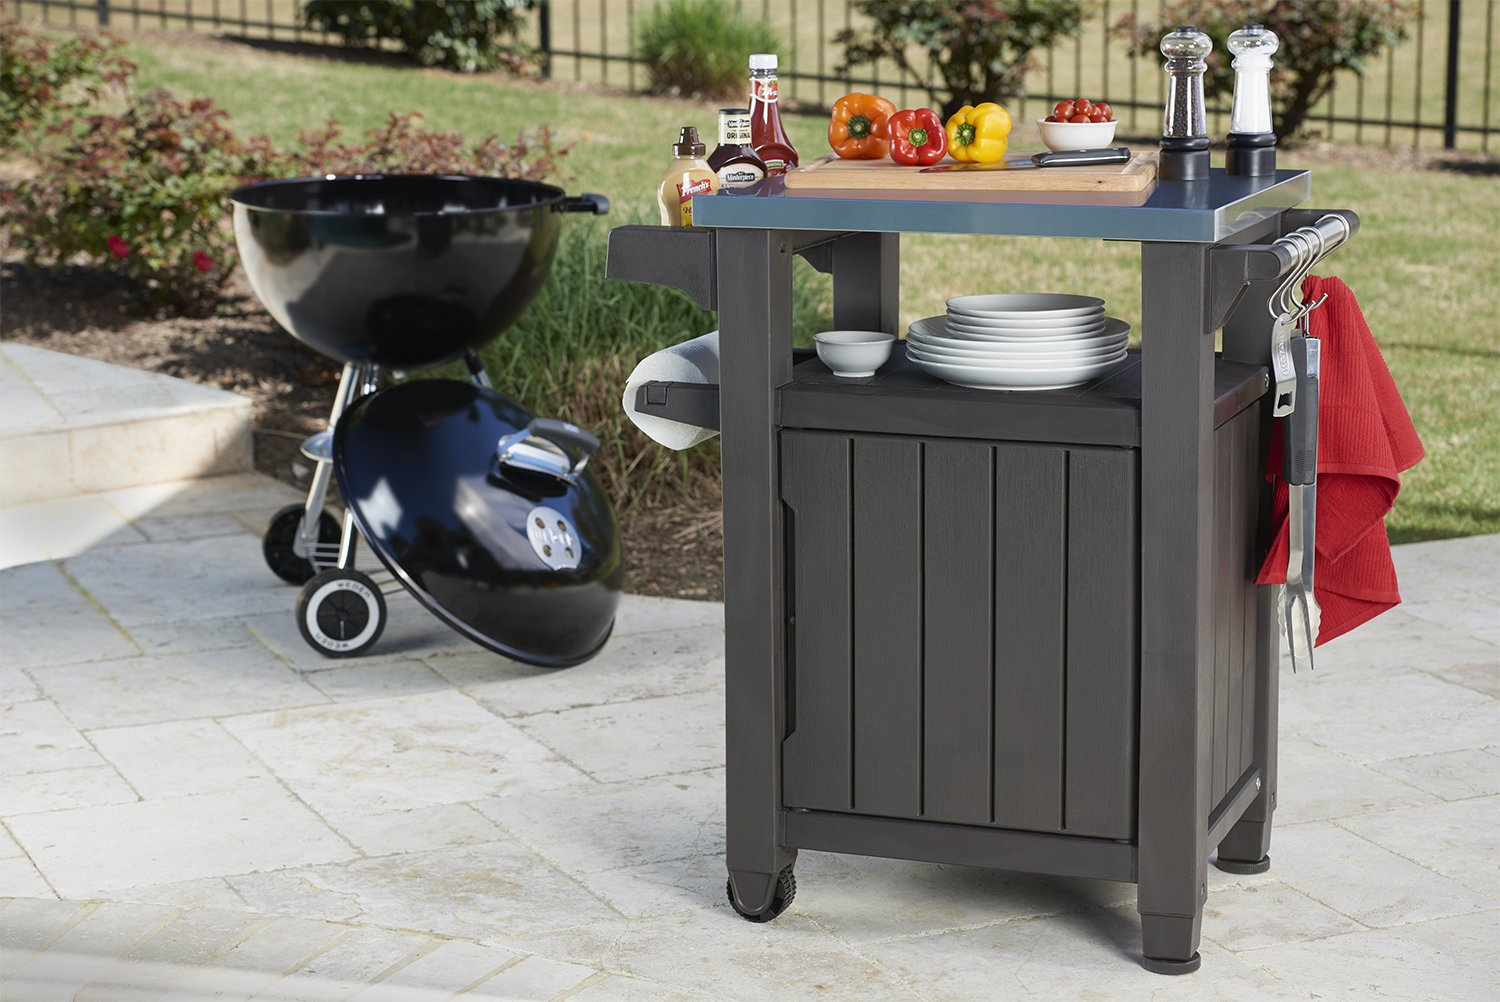 Outdoor Prep Station Serving BBQ Grilling Patio Deck Cabinet Backyard Table by Keter Products (Image #5)